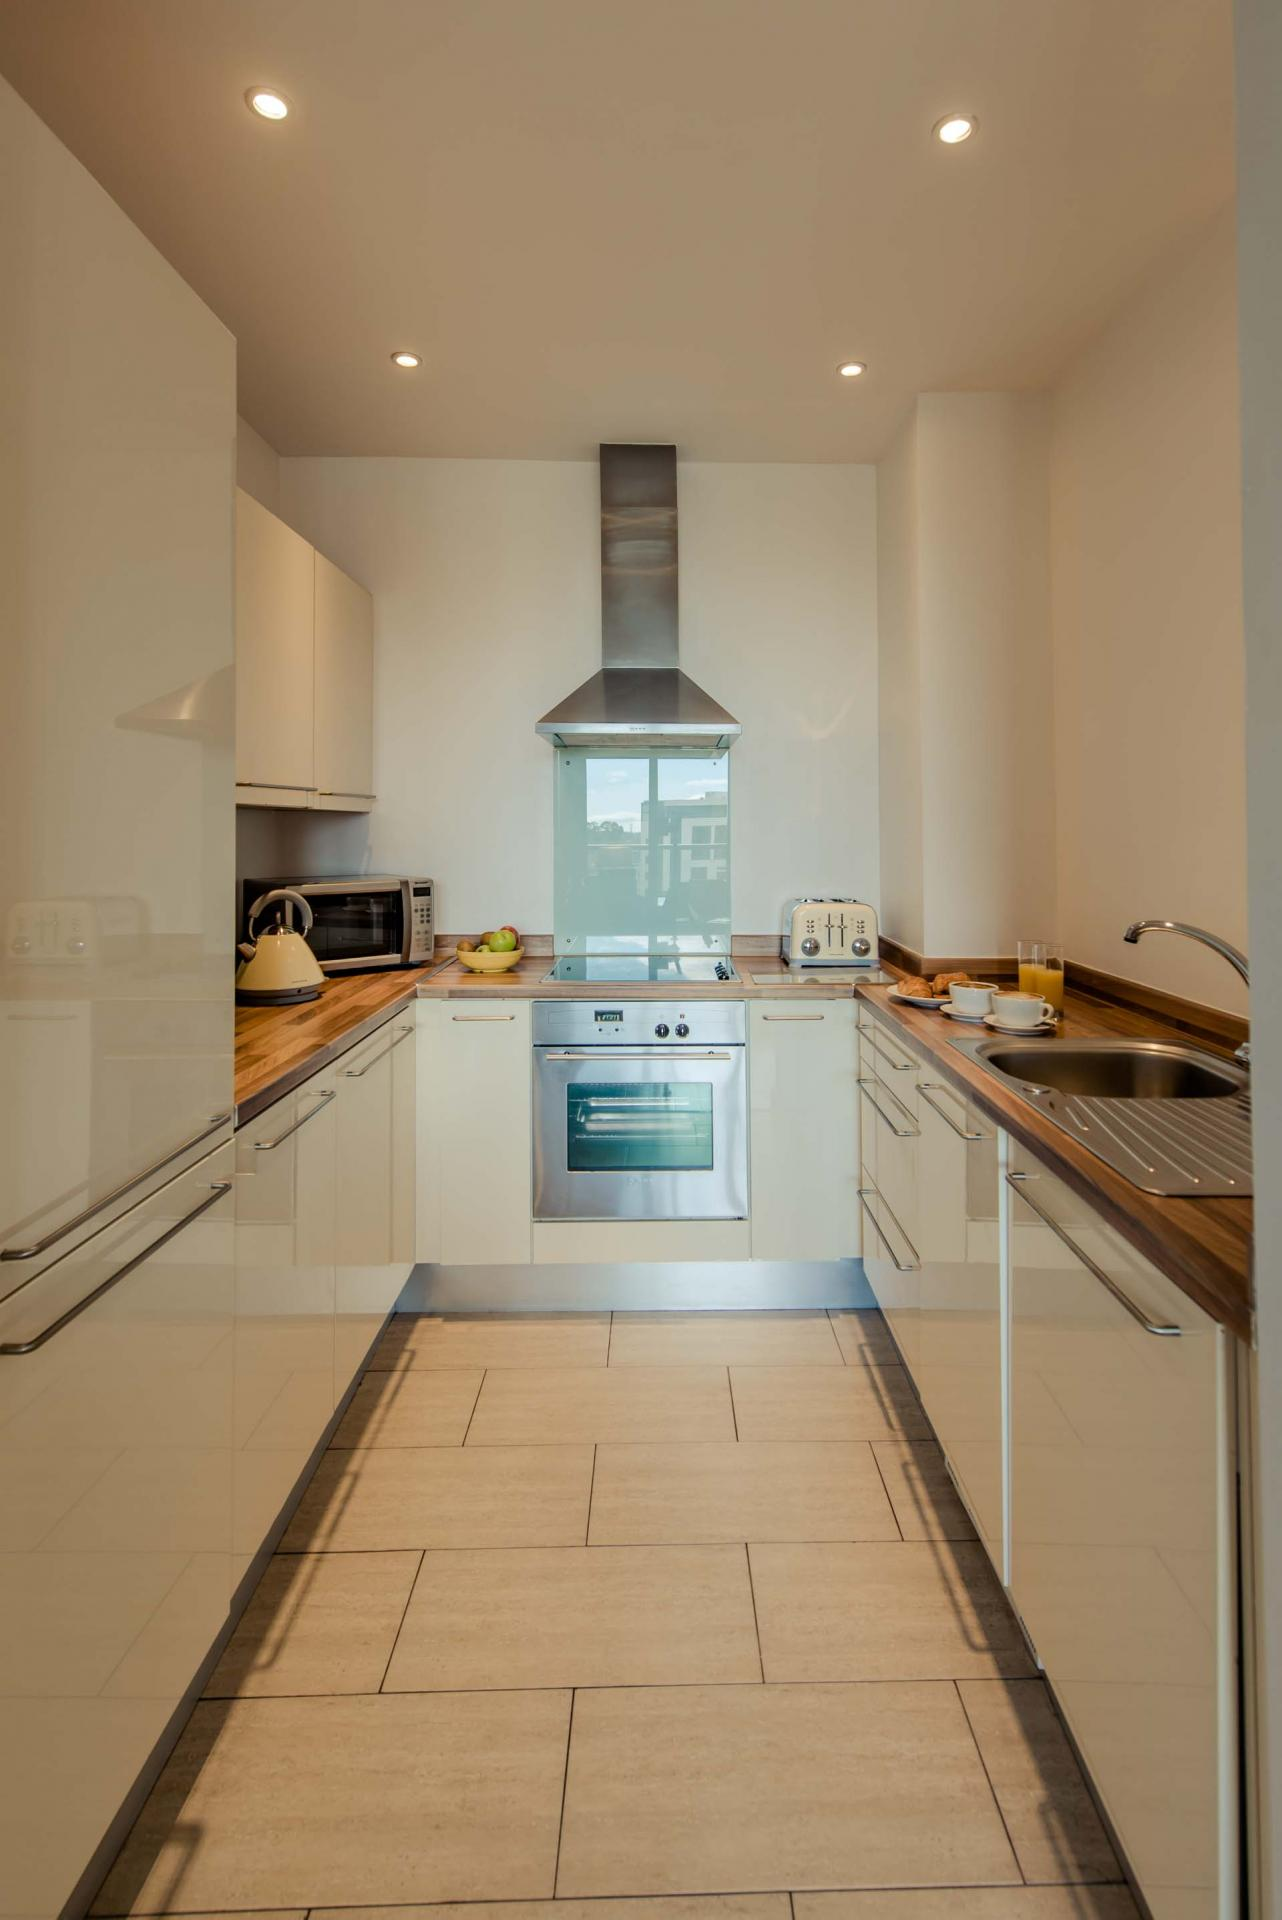 Kitchen at Premier Suites Dublin Sandyford, Sandyford, Dublin